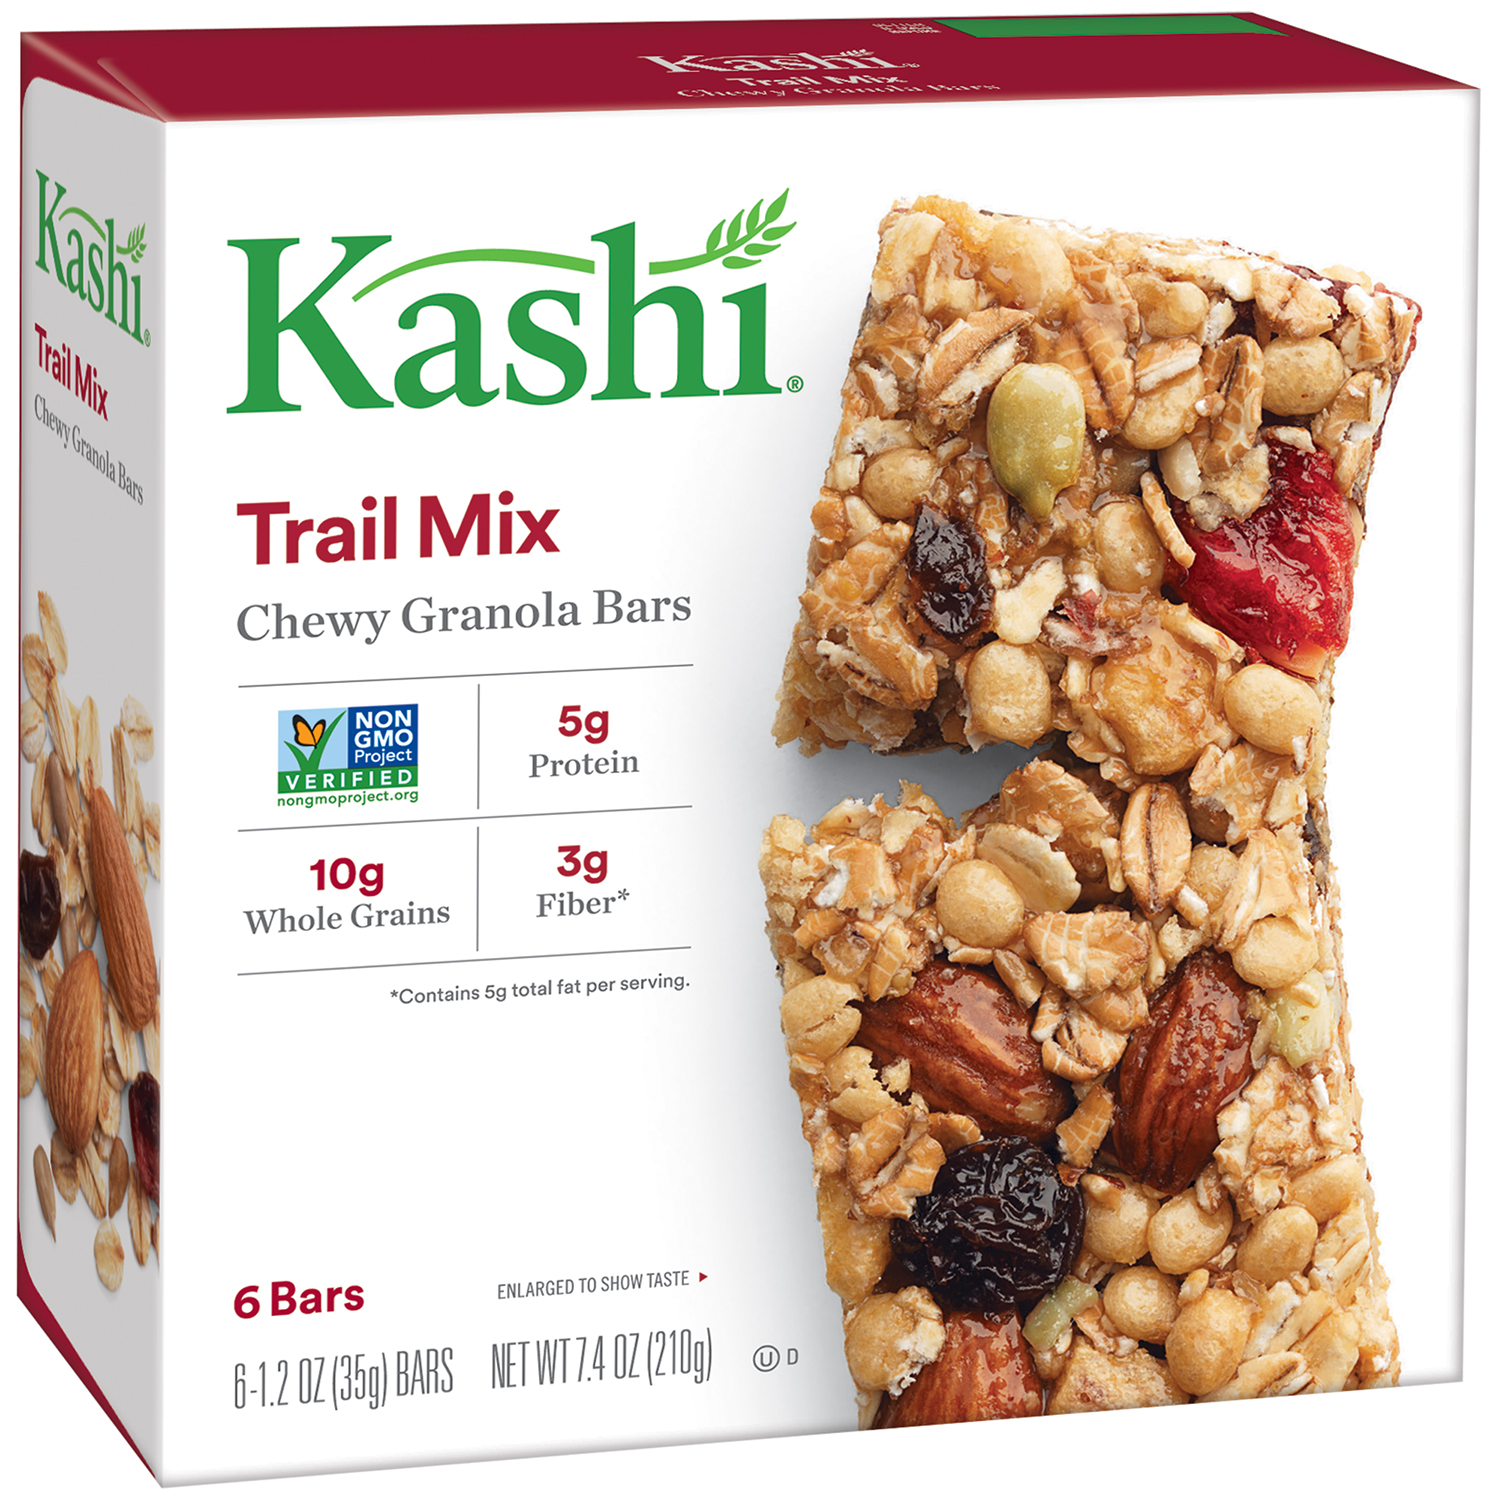 Kashi® Trail Mix Chewy Granola Bars 6-1.2 oz. Wrappers